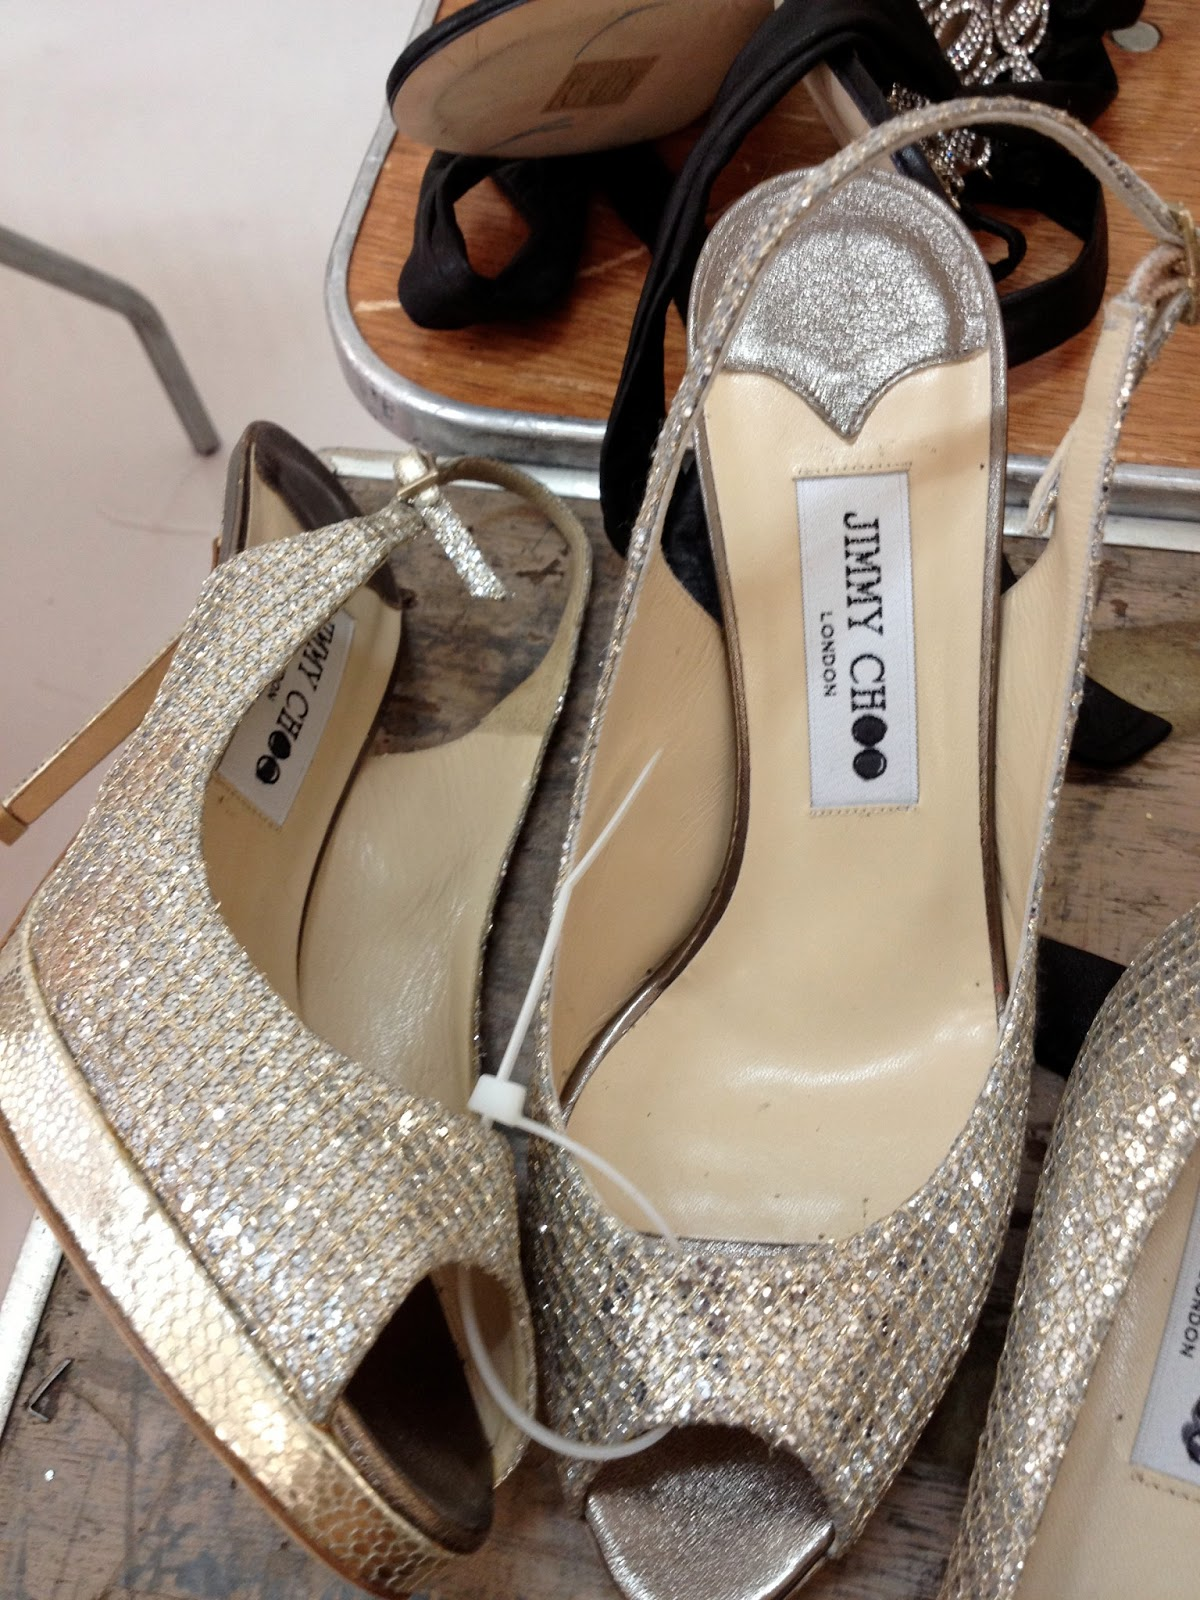 in pictures looking for bridal shoes at jimmy choo wedding shoes In pictures Looking for bridal shoes at the Jimmy Choo sample sale May NYC sample sale